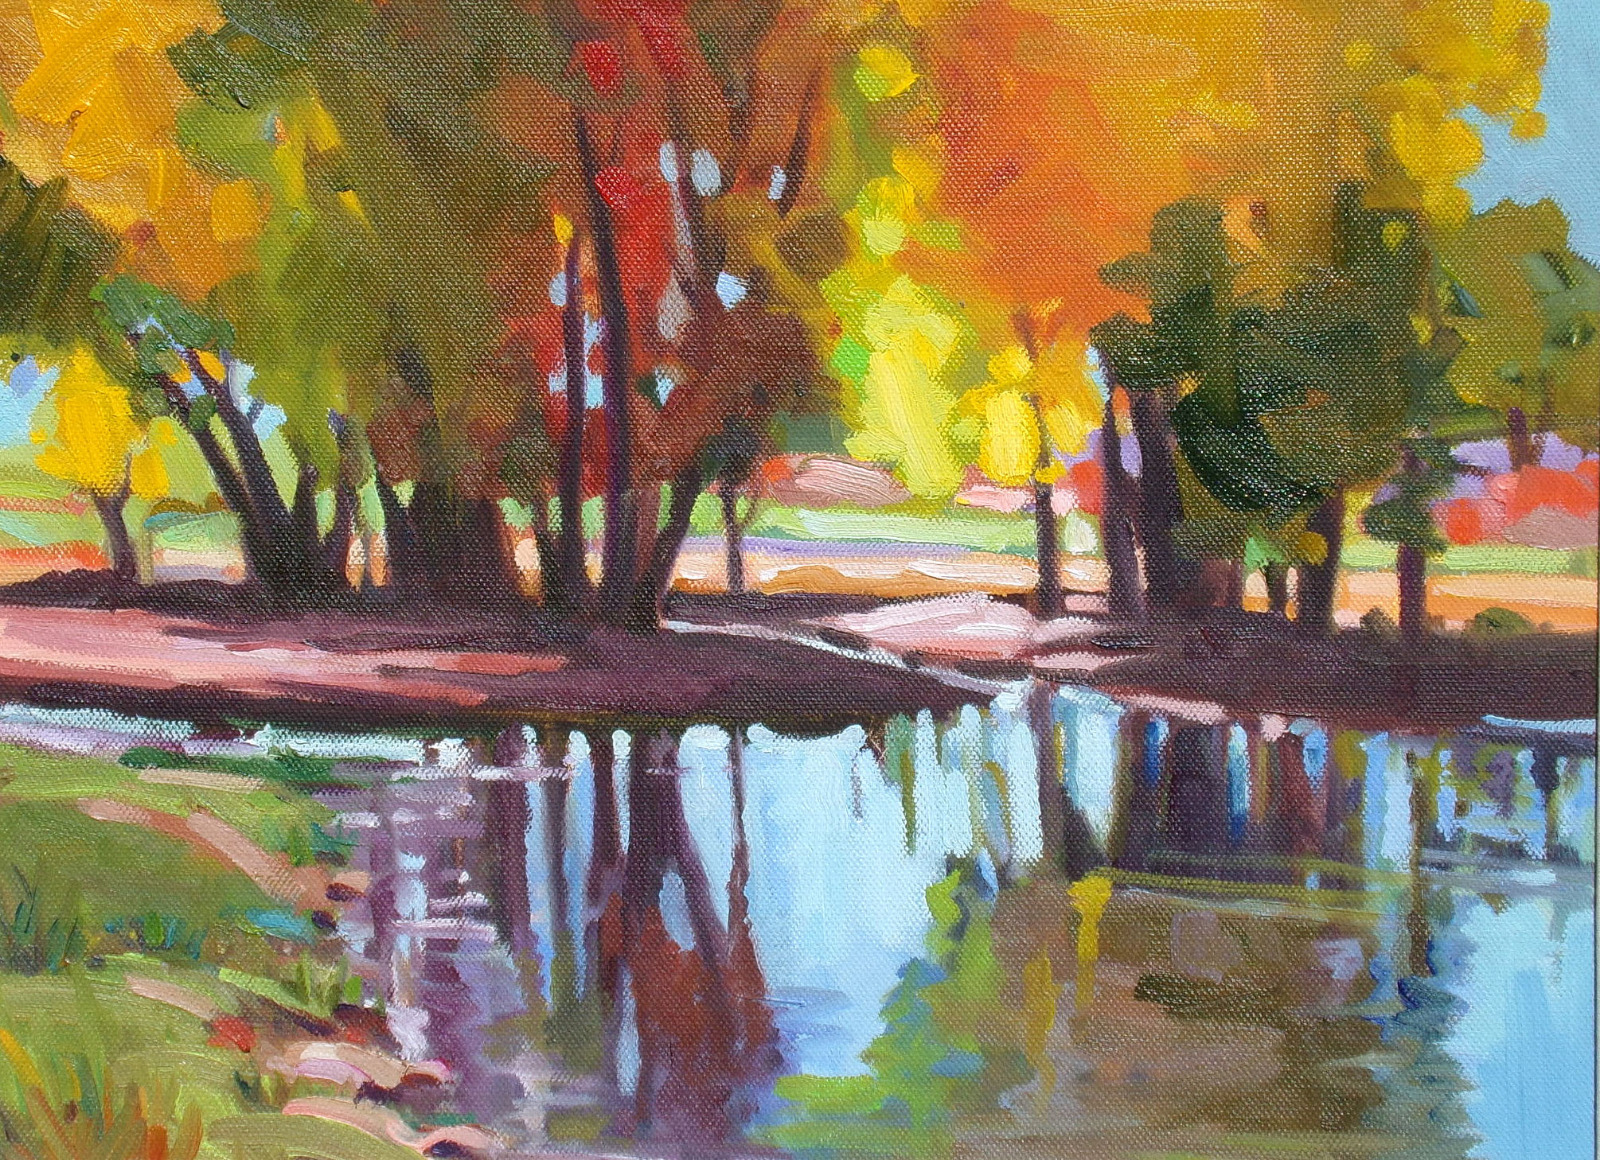 christine smith hudson garden reflections original oil